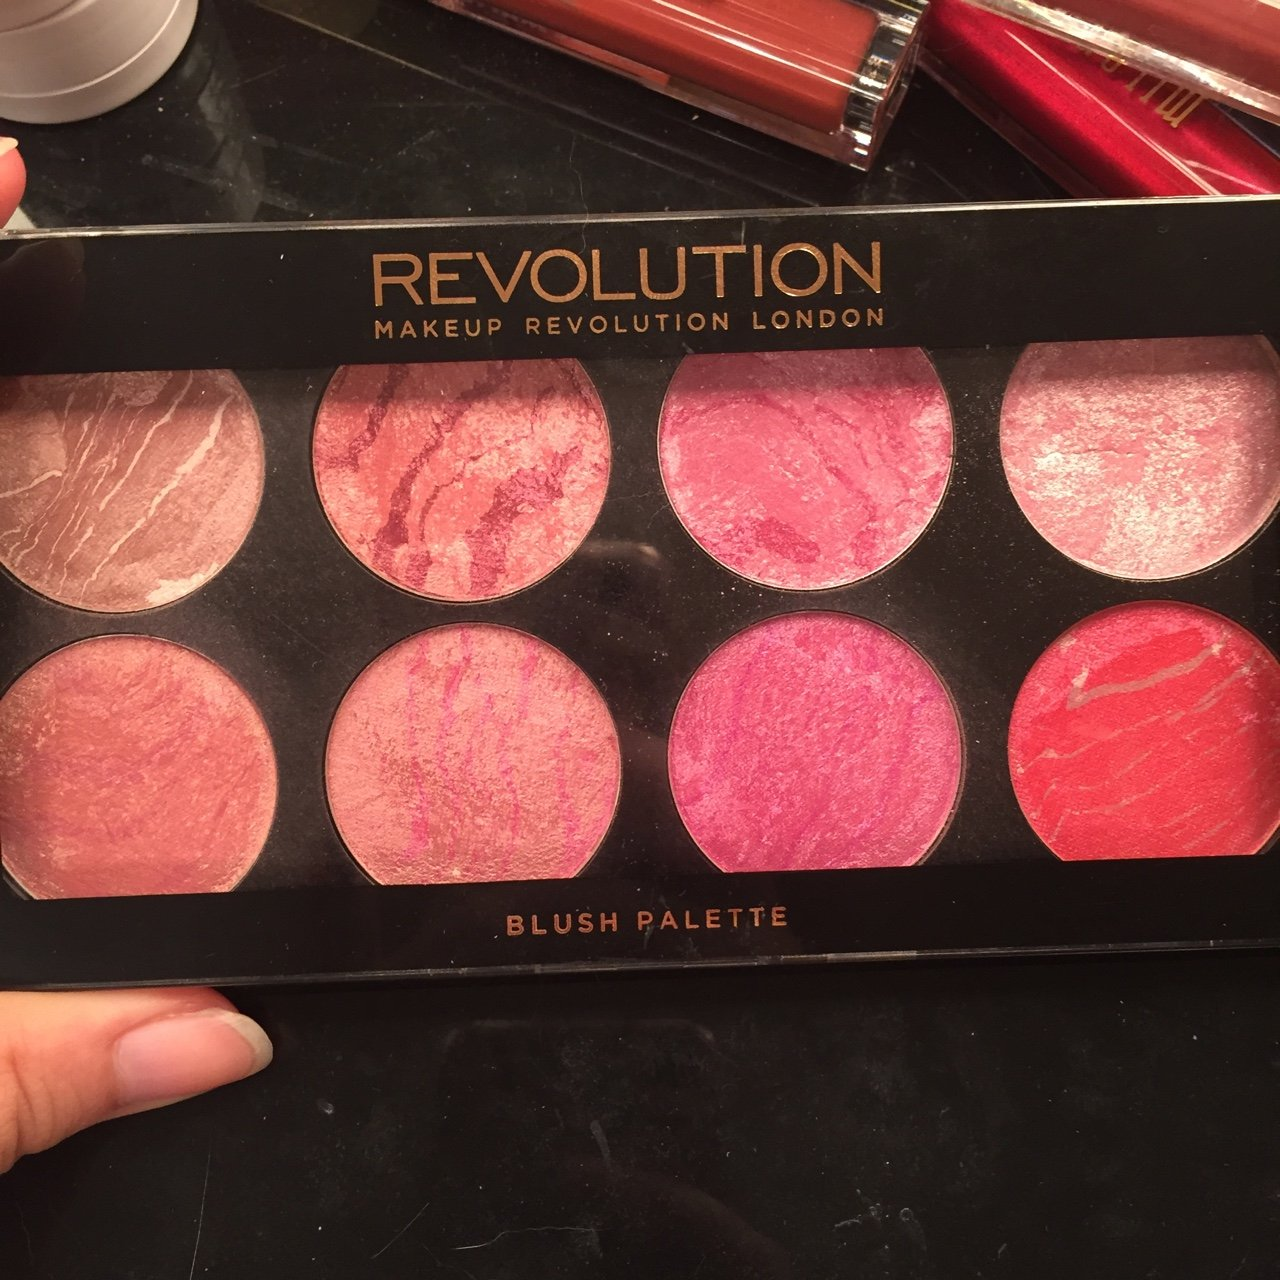 Makeup Revolution Blush Palette Queen Pretty Pinks And The Depop Make Up